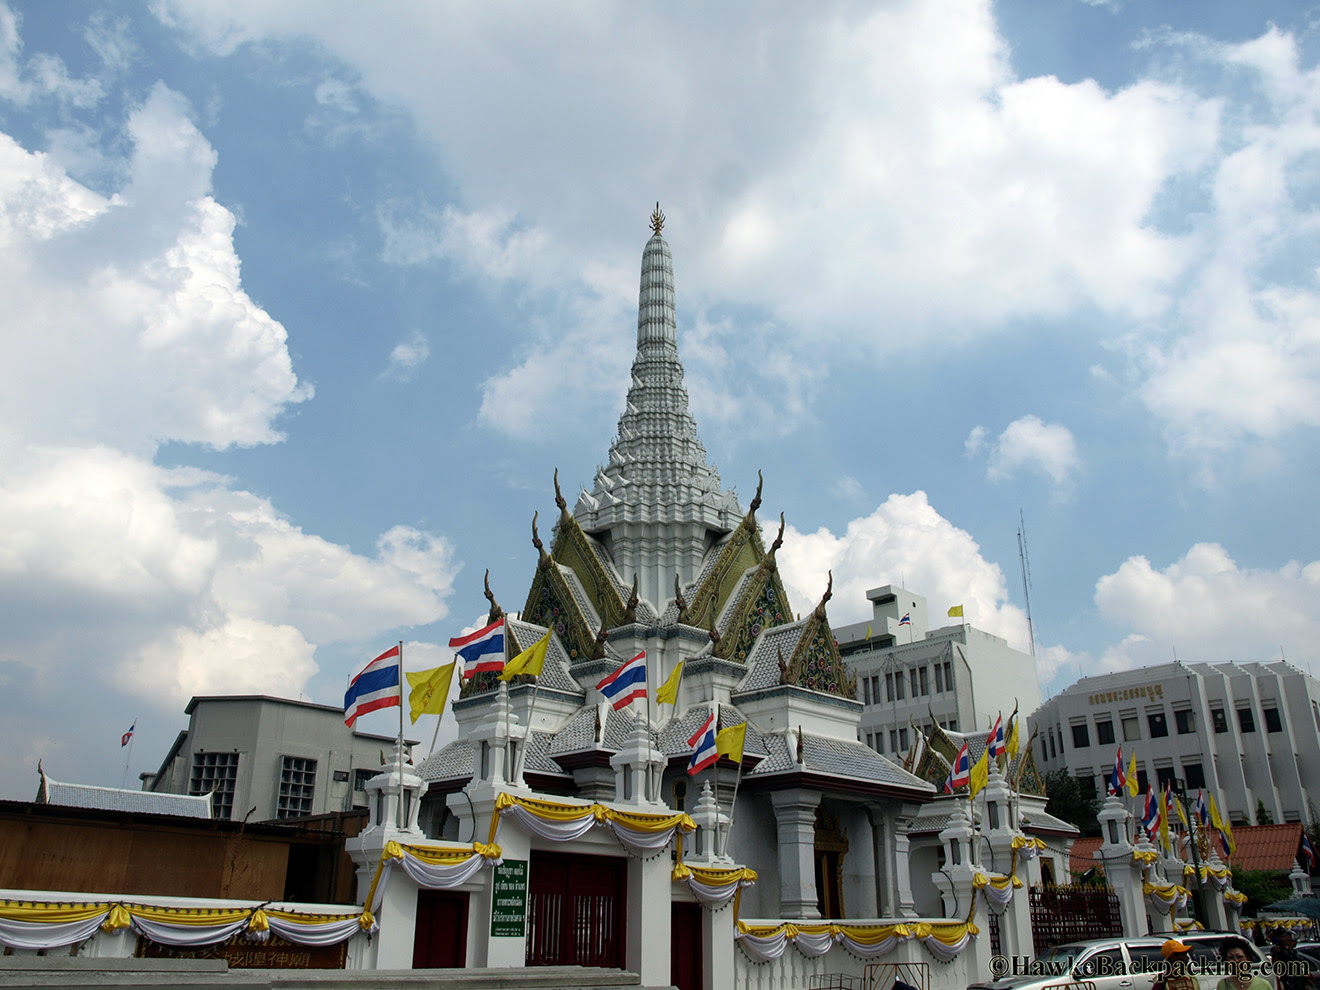 Wat Lak Muang Bangkok Location Attractions Map,Location Attractions Map of Wat Lak Muang Bangkok Thailand,Wat Lak Muang Bangkok Thailand accommodation destinations hotels map reviews photos pictures